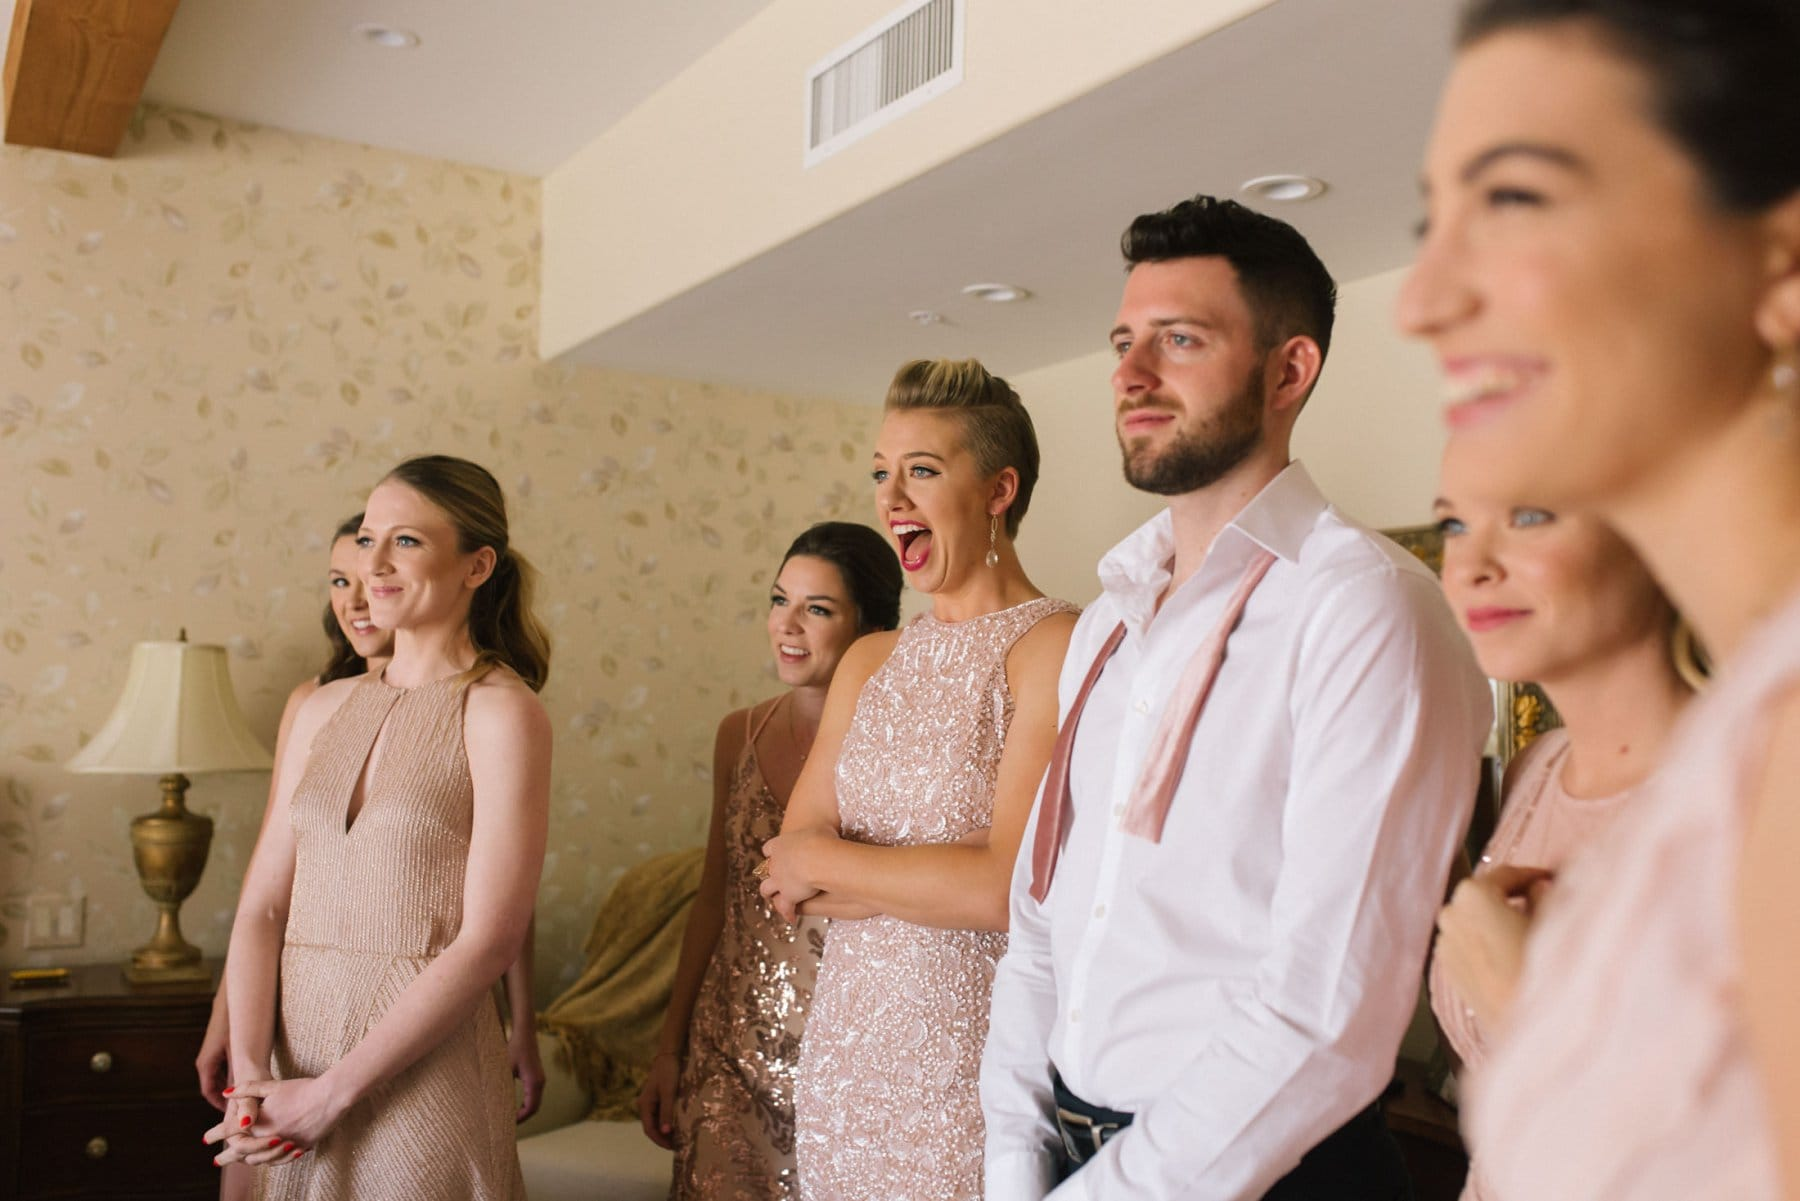 Arizona documentary wedding photographer bridesmaids reacting to bride for first time